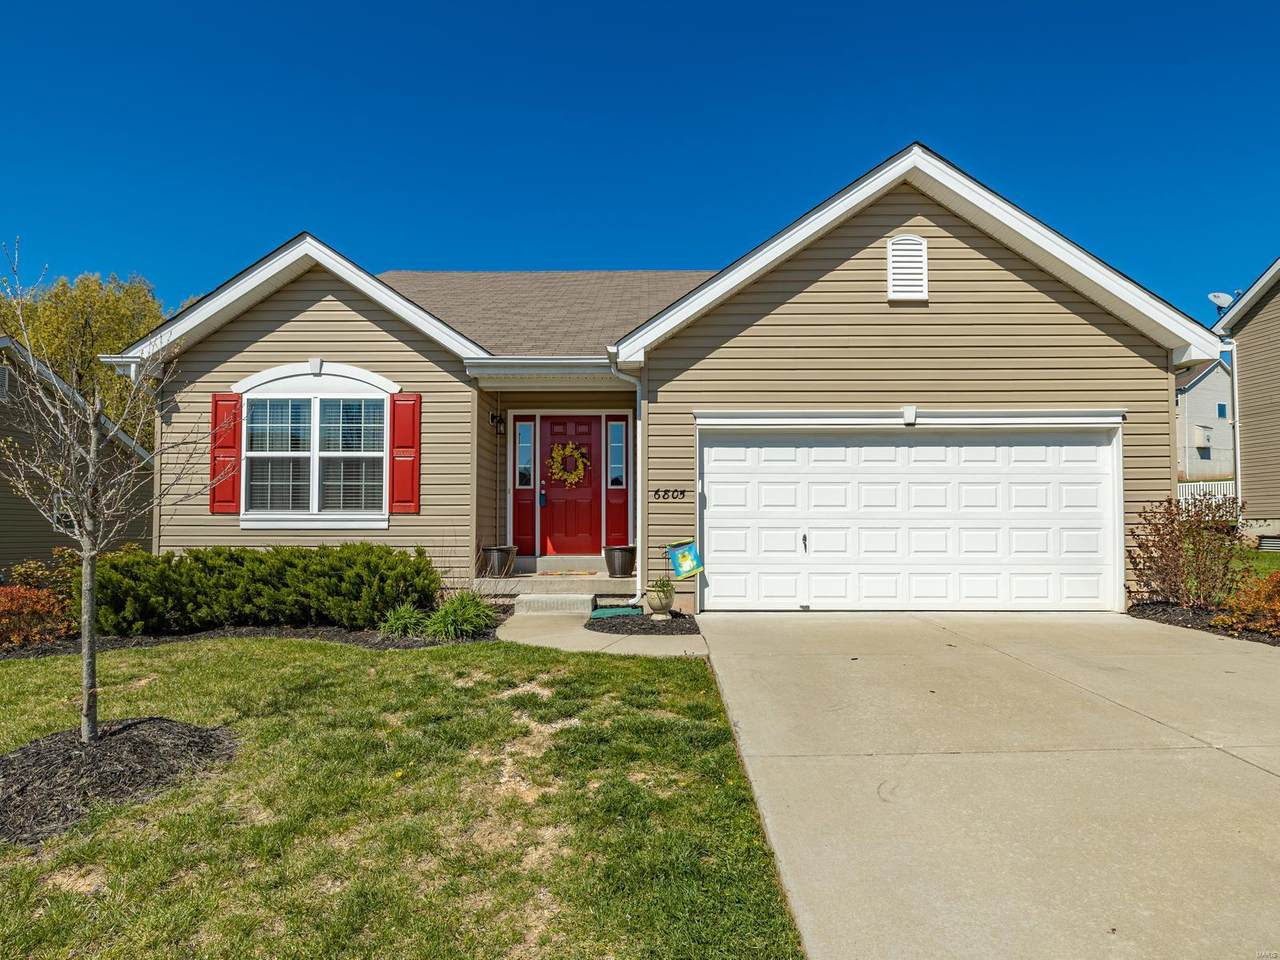 6805 Eagles View Dr - Photo 1